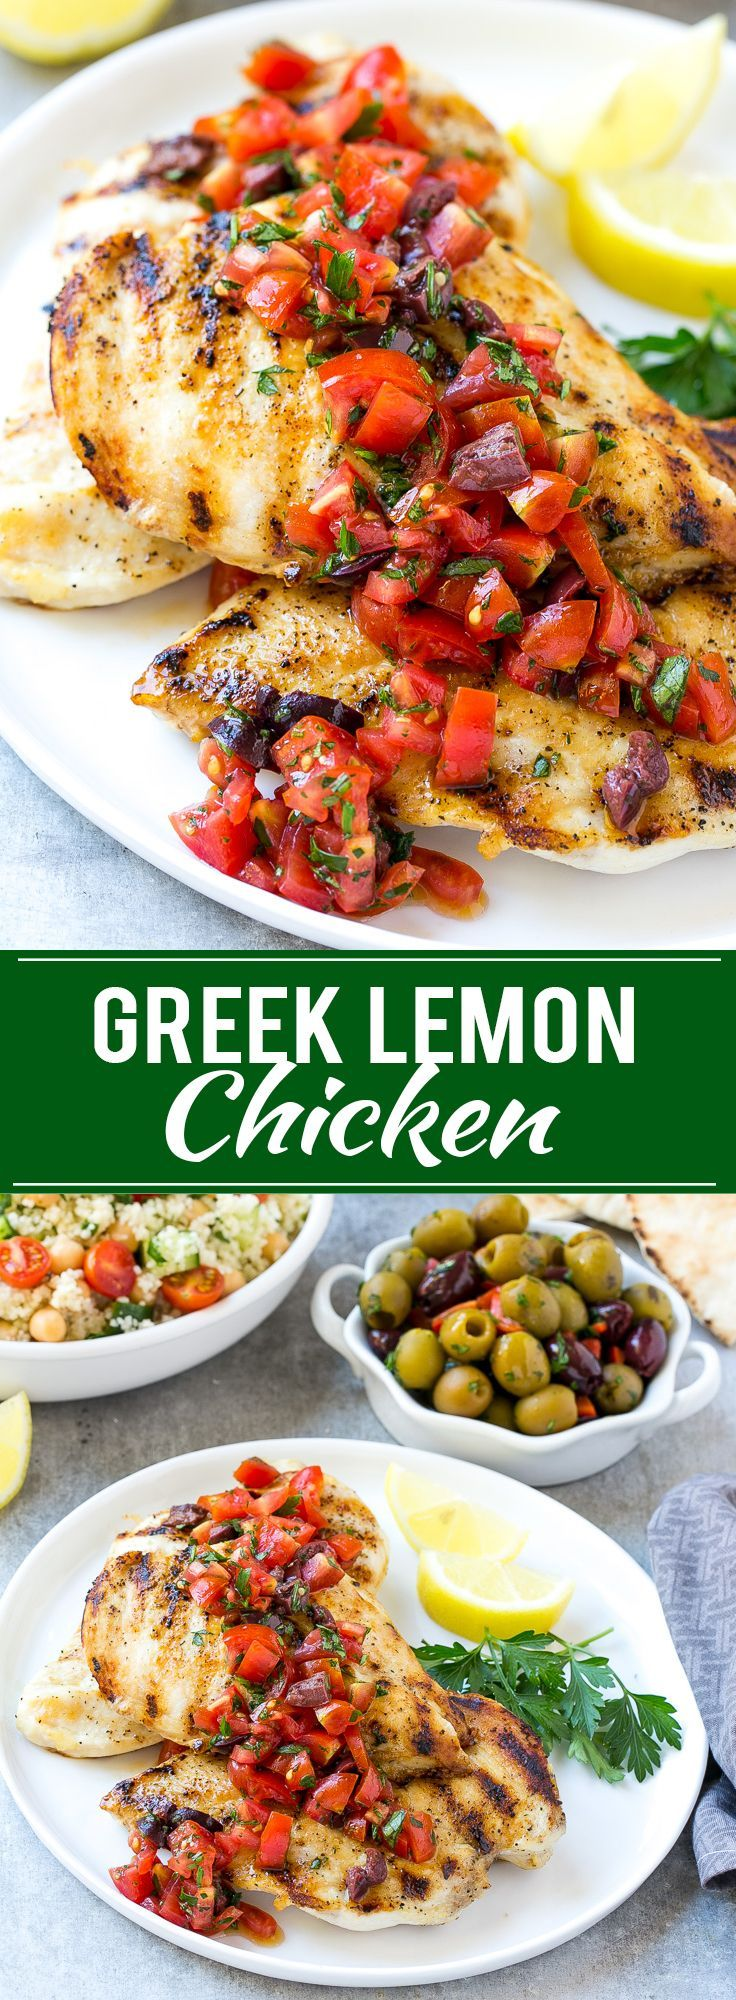 This recipe for Greek lemon chicken is marinated chicken that's been grilled to…